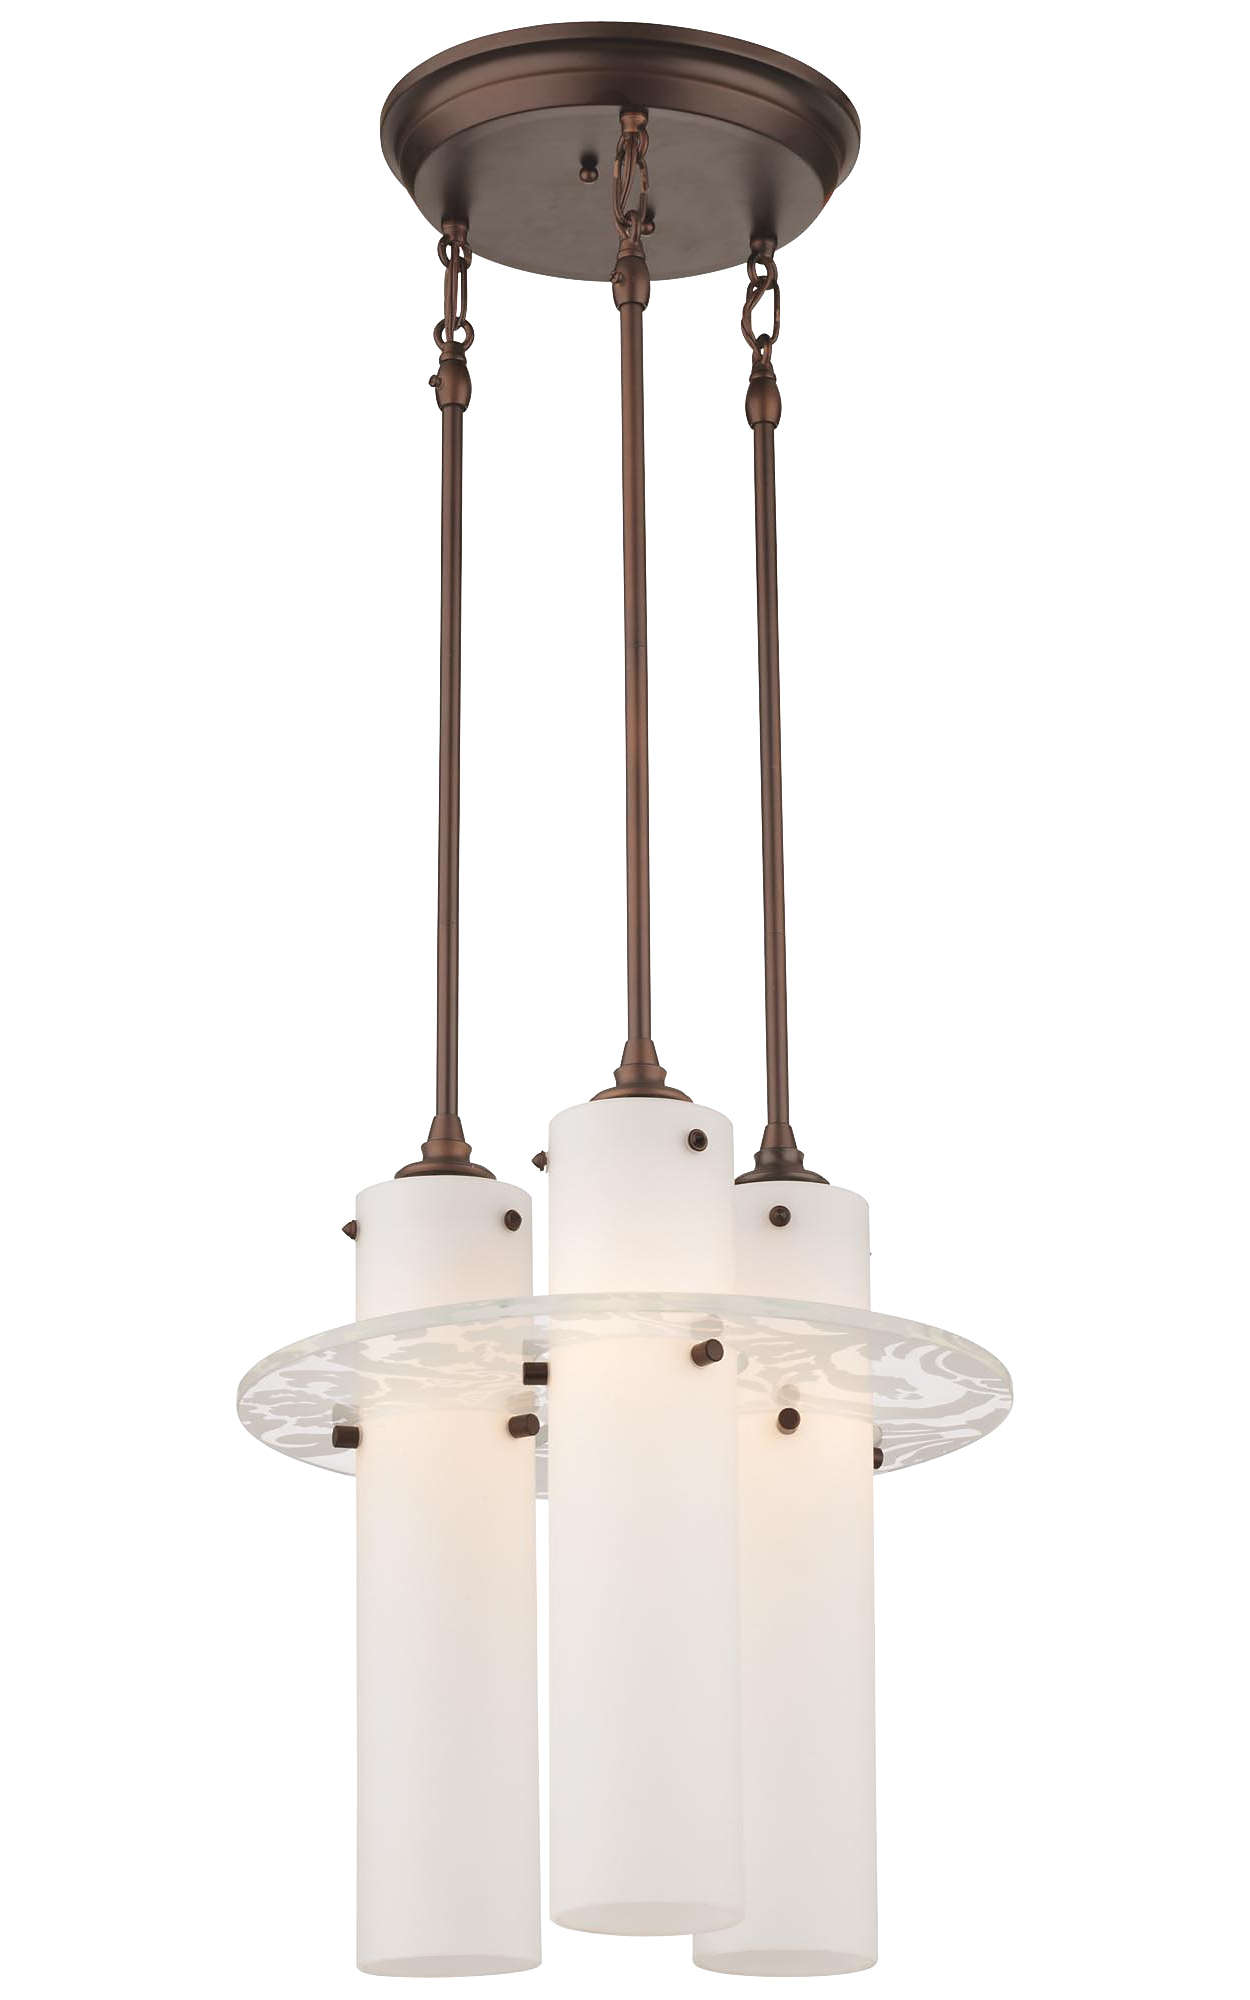 Dana 3-light Pendant in Merlot Bronze finish